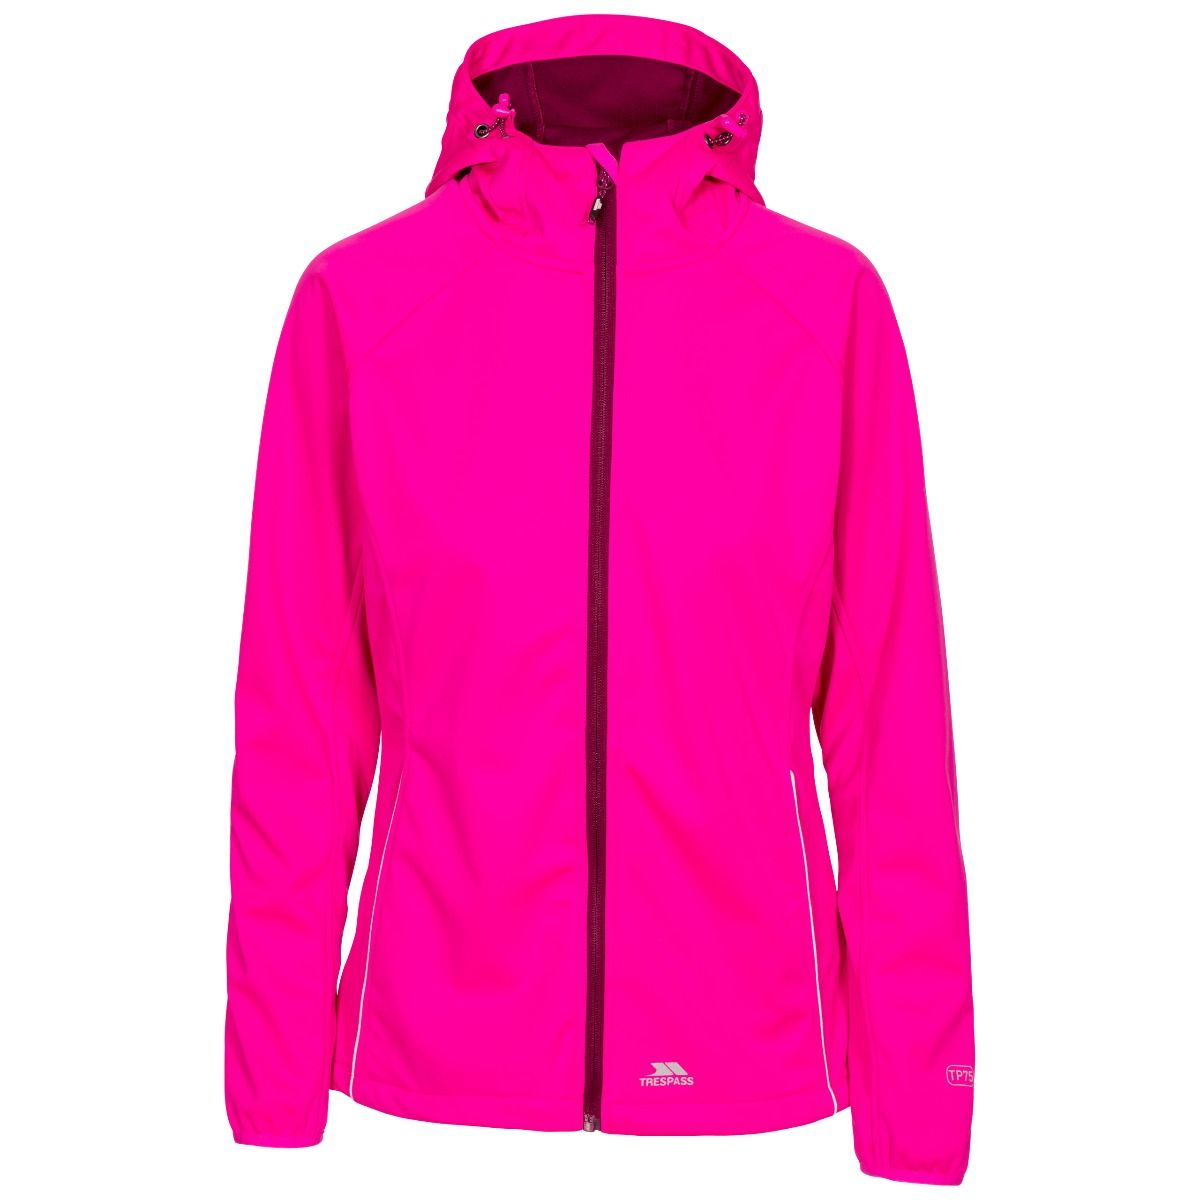 Sisely Womens Hooded Softshell Jacket